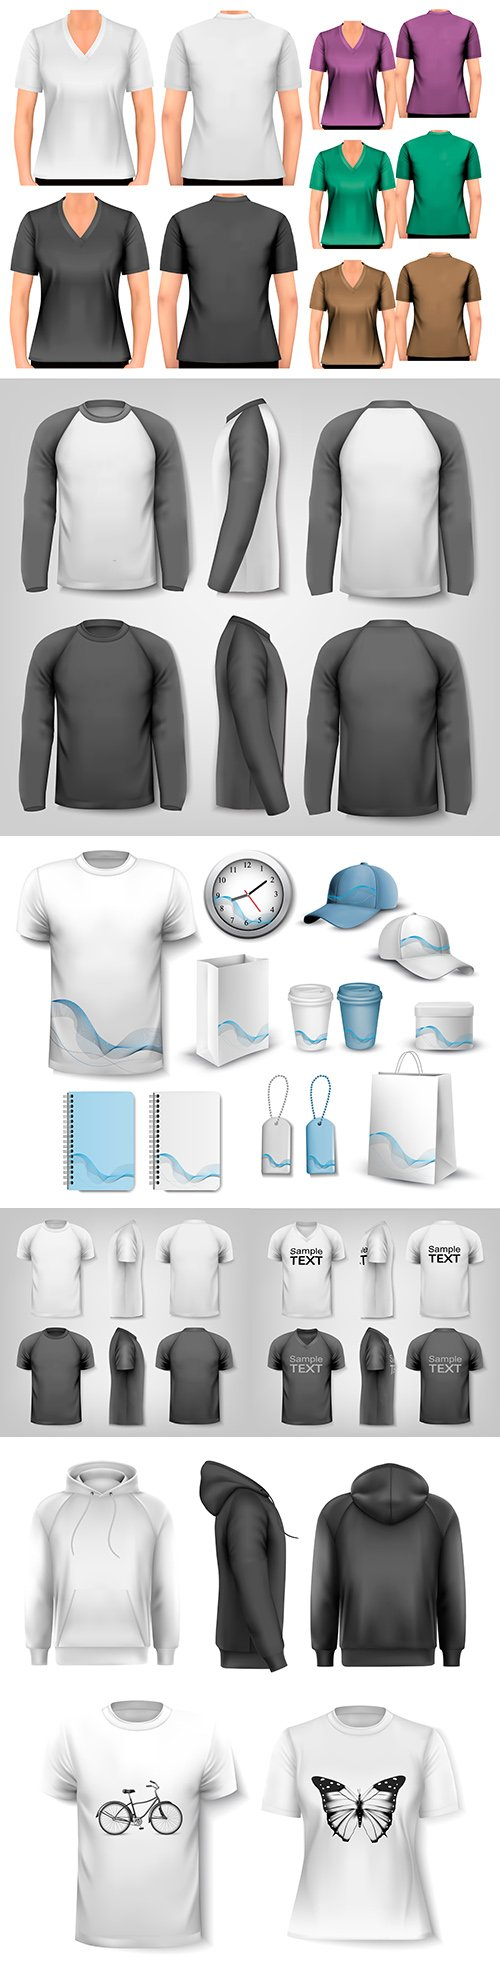 Female and male black and white T-shirt with sleeves